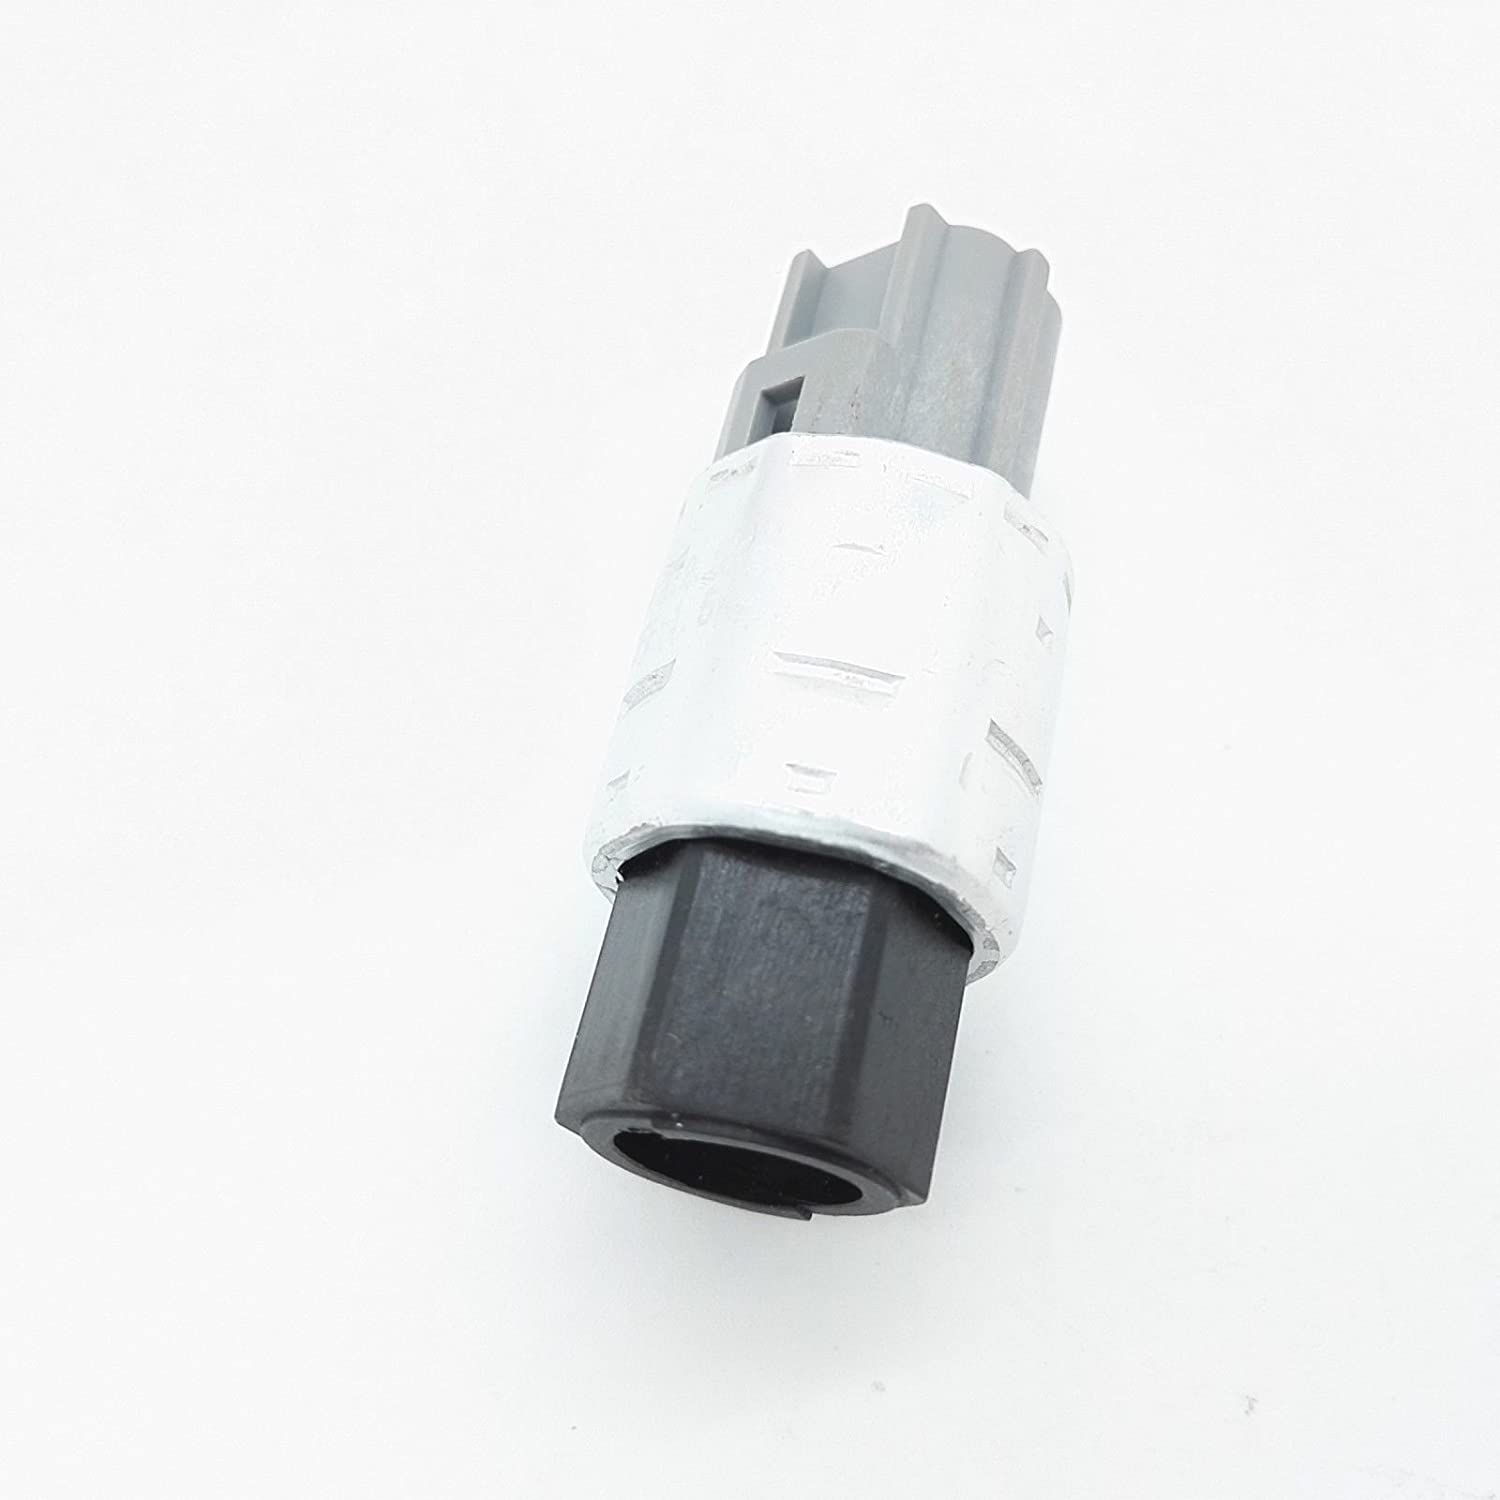 Amazon.com: A/C Clutch Cycle Switch for Chrysler PT Cruiser Dodge Neon Jeep Liberty Wrangler: Automotive